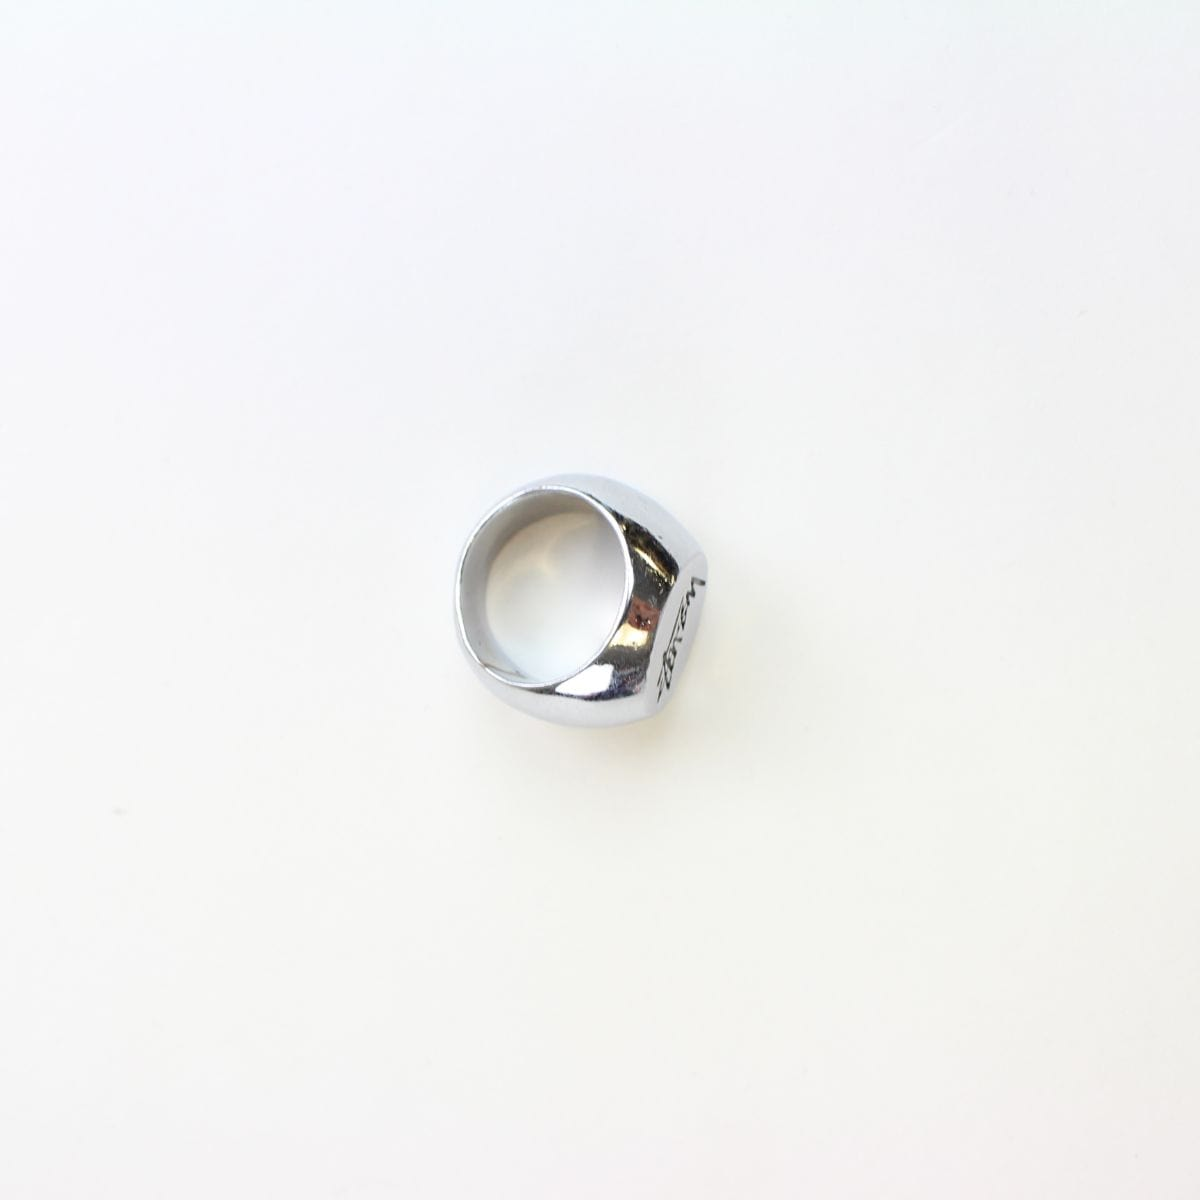 stussy silver ring - SaruGeneral